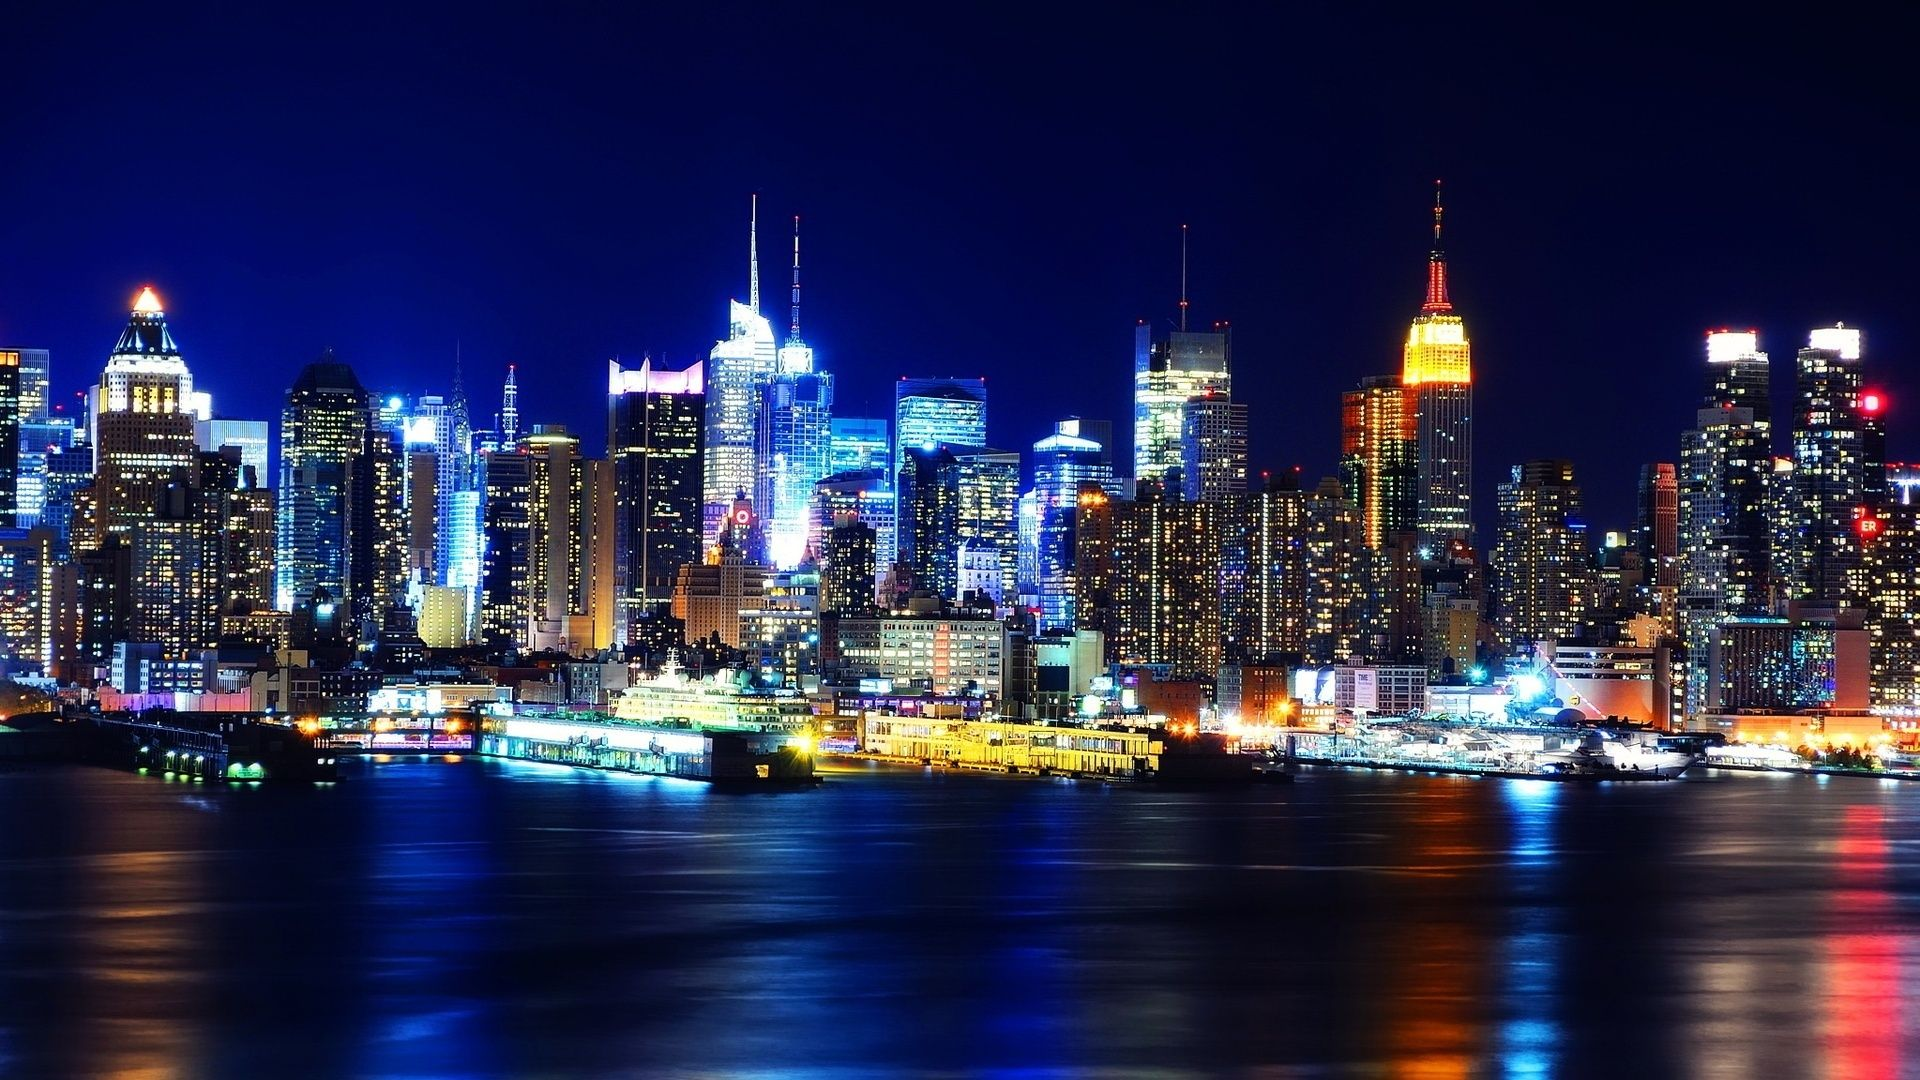 Sharing New York City Night Lights Hd Wallpapers Wallpaper New York Wallpaper New York Night Ny City